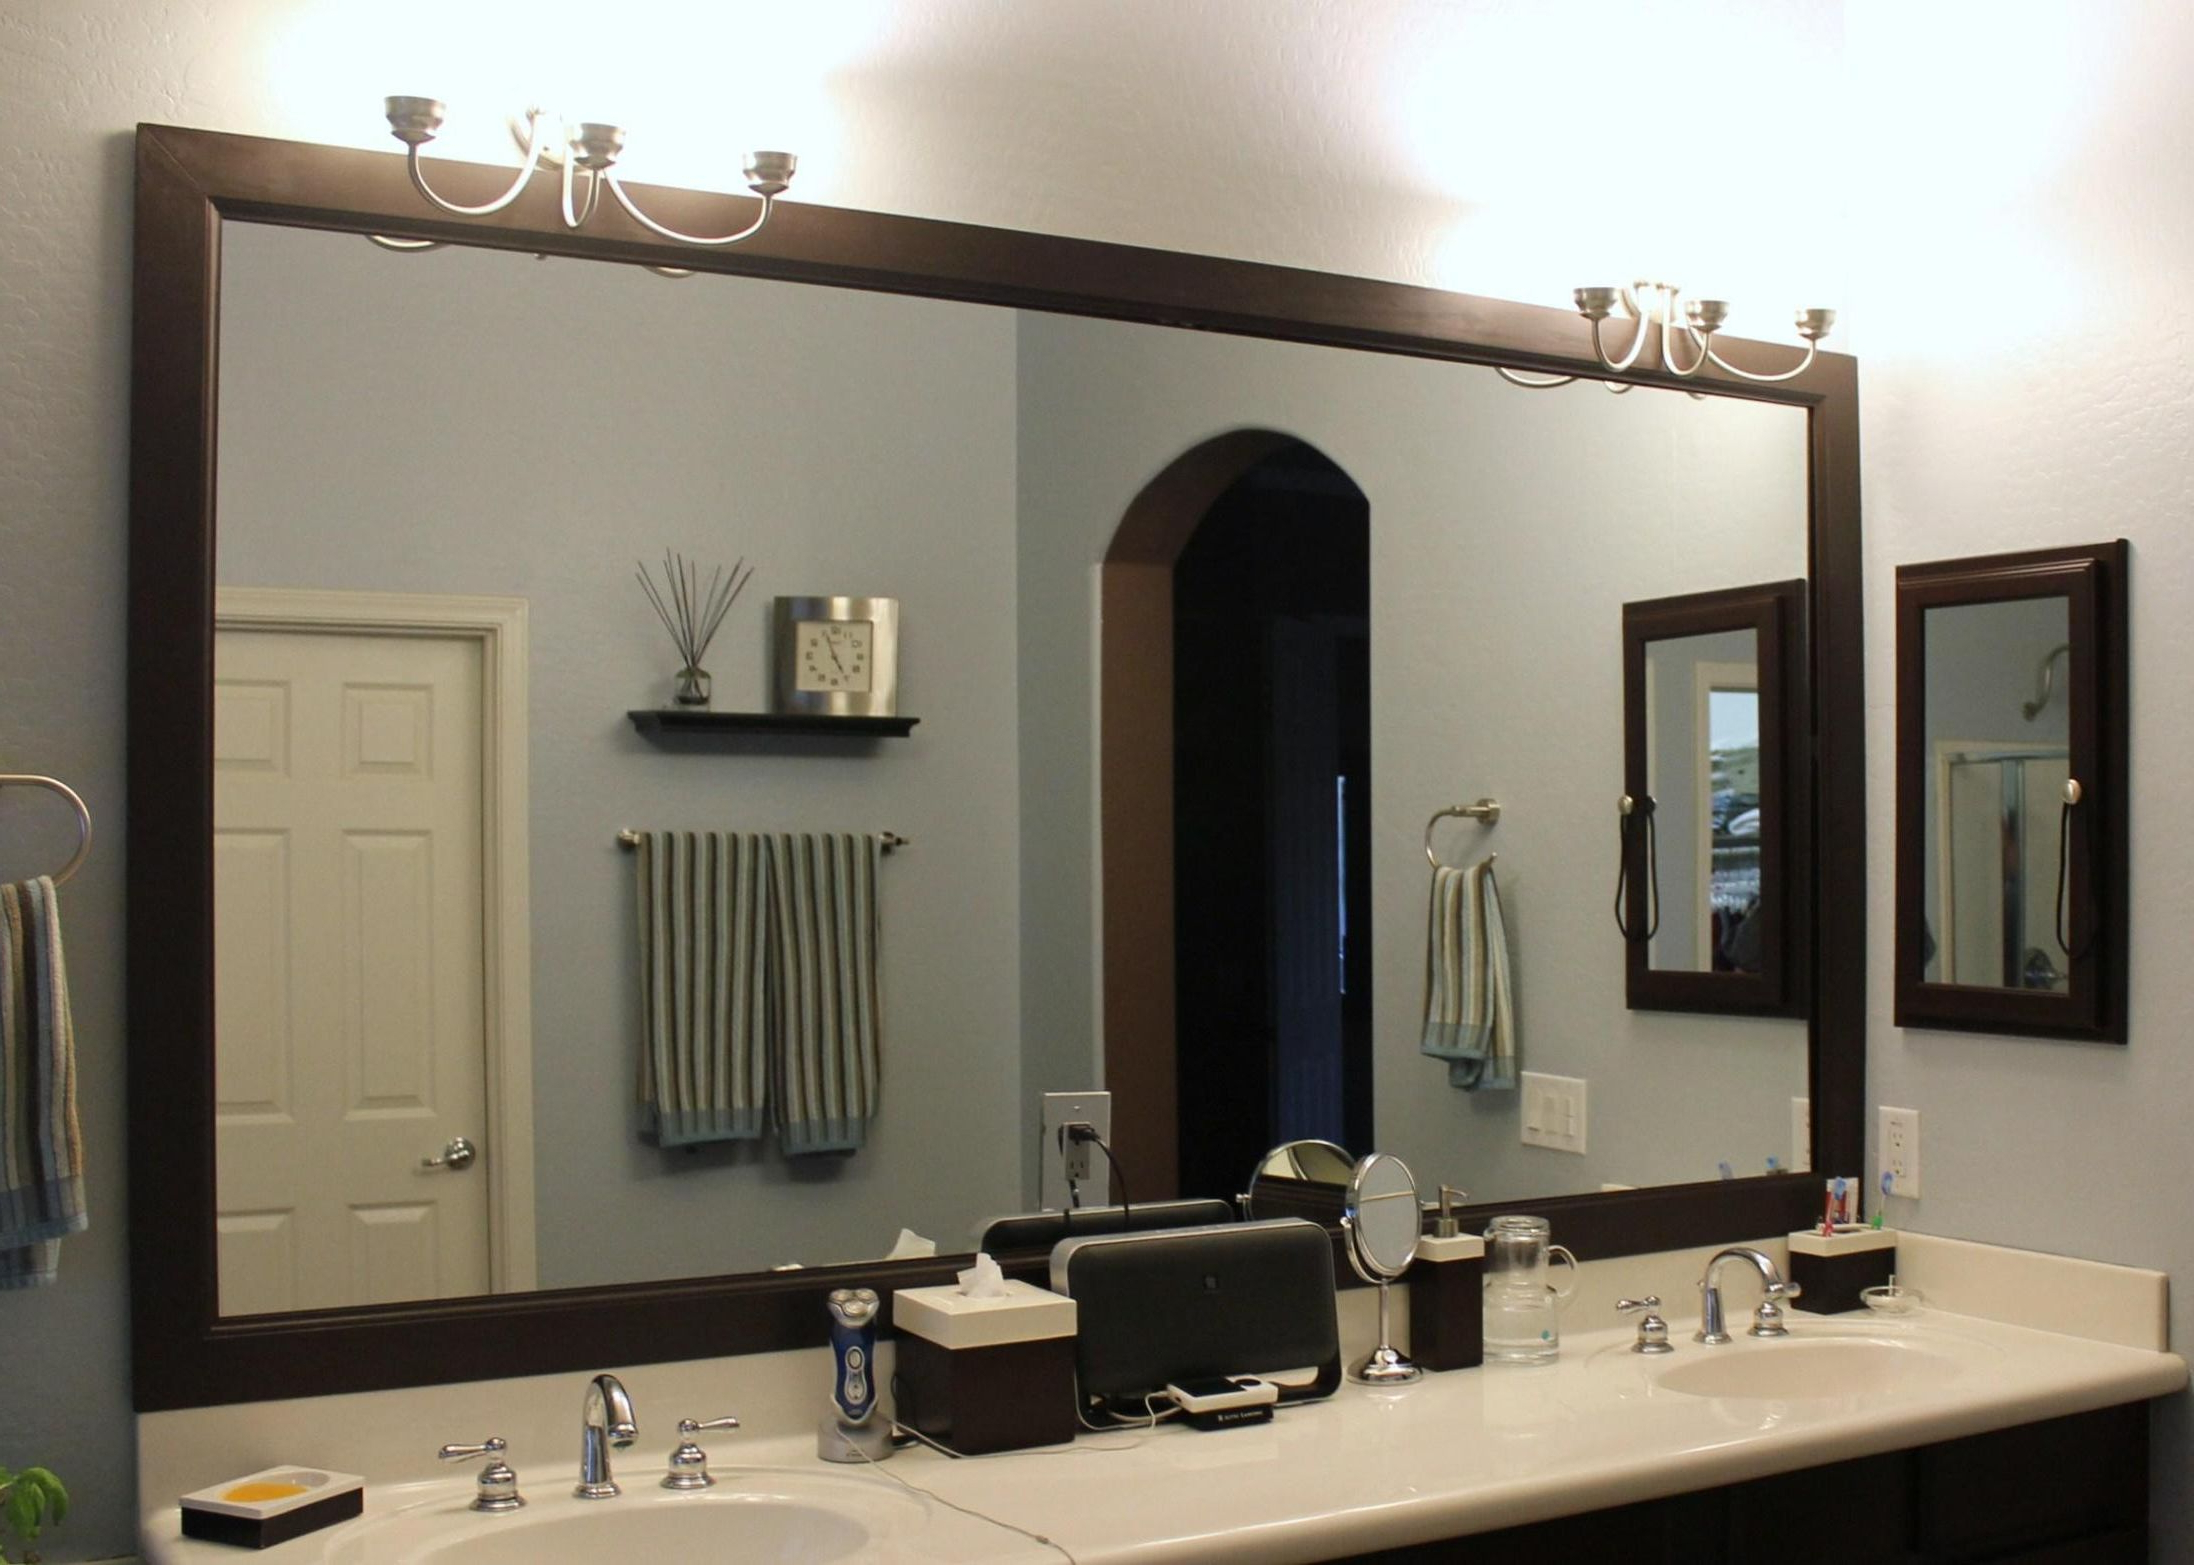 Frame Bathroom Wall Mirrors For Well Liked Engaging Wood Frame Ledge Round Wall Mirror Smoke Modern (View 4 of 20)